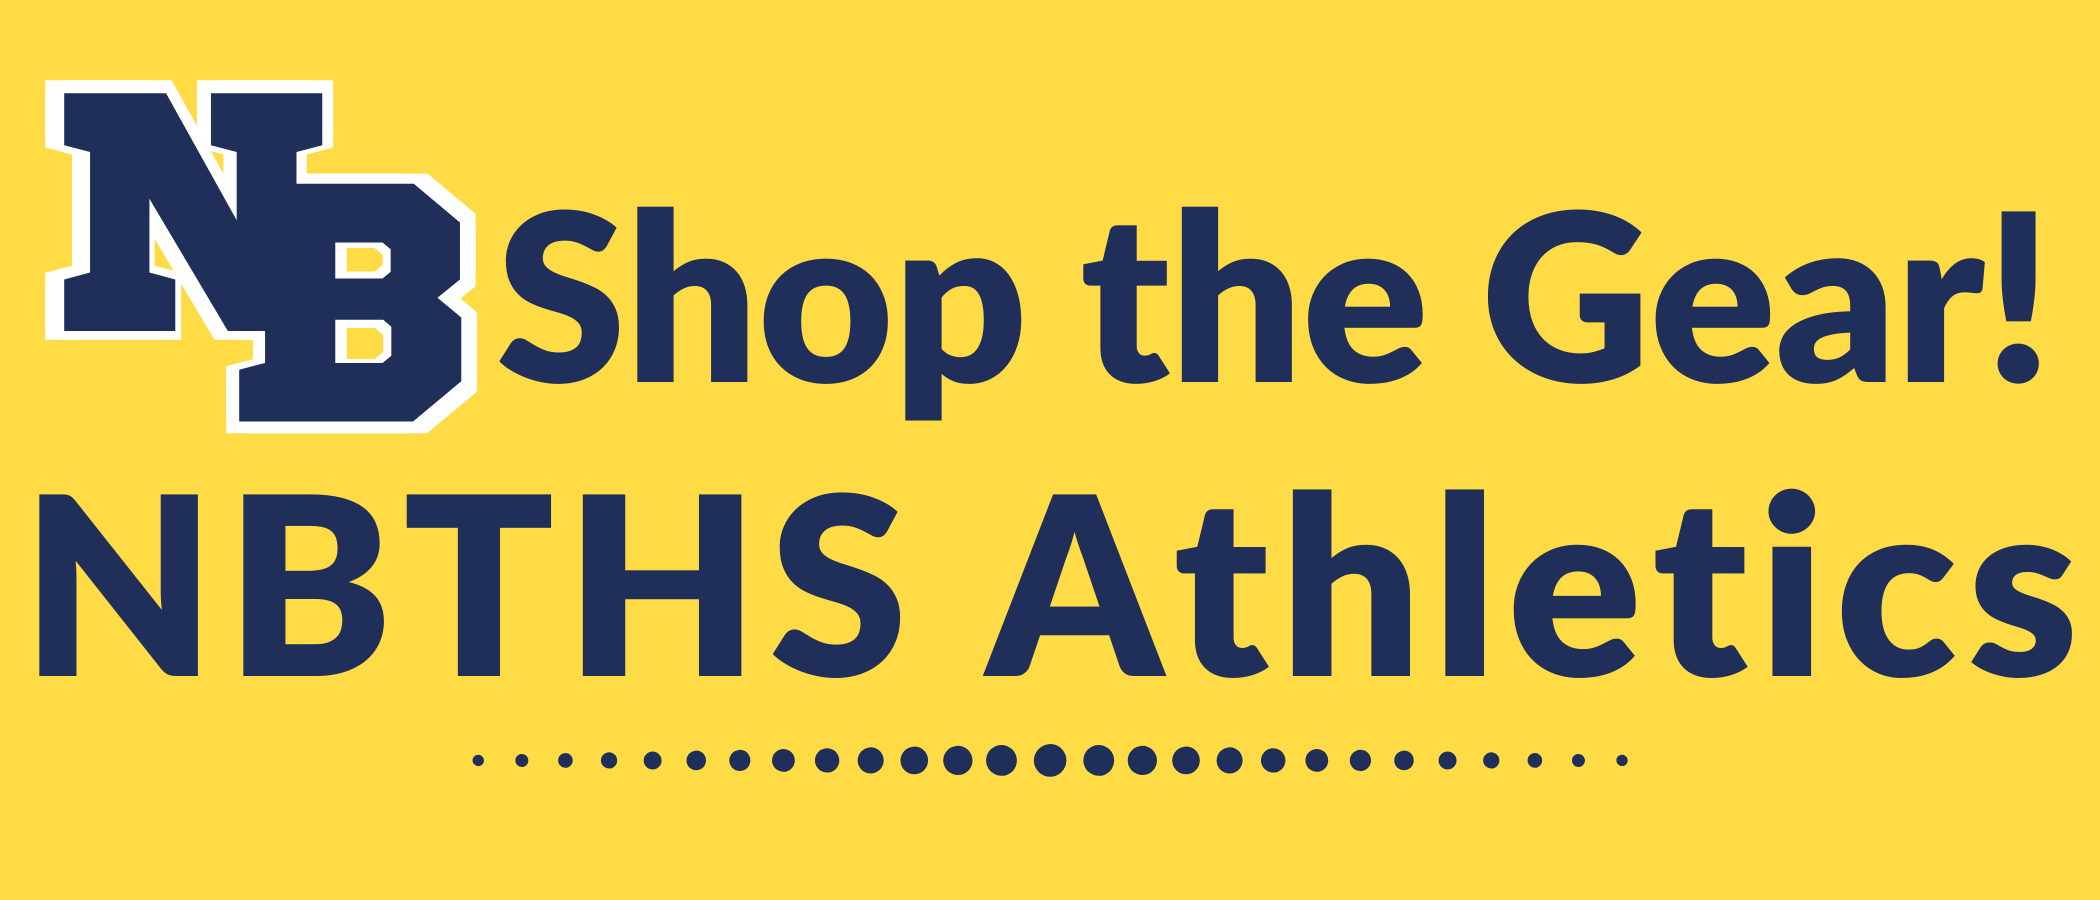 Shop the Gear! NBTHS Athletics